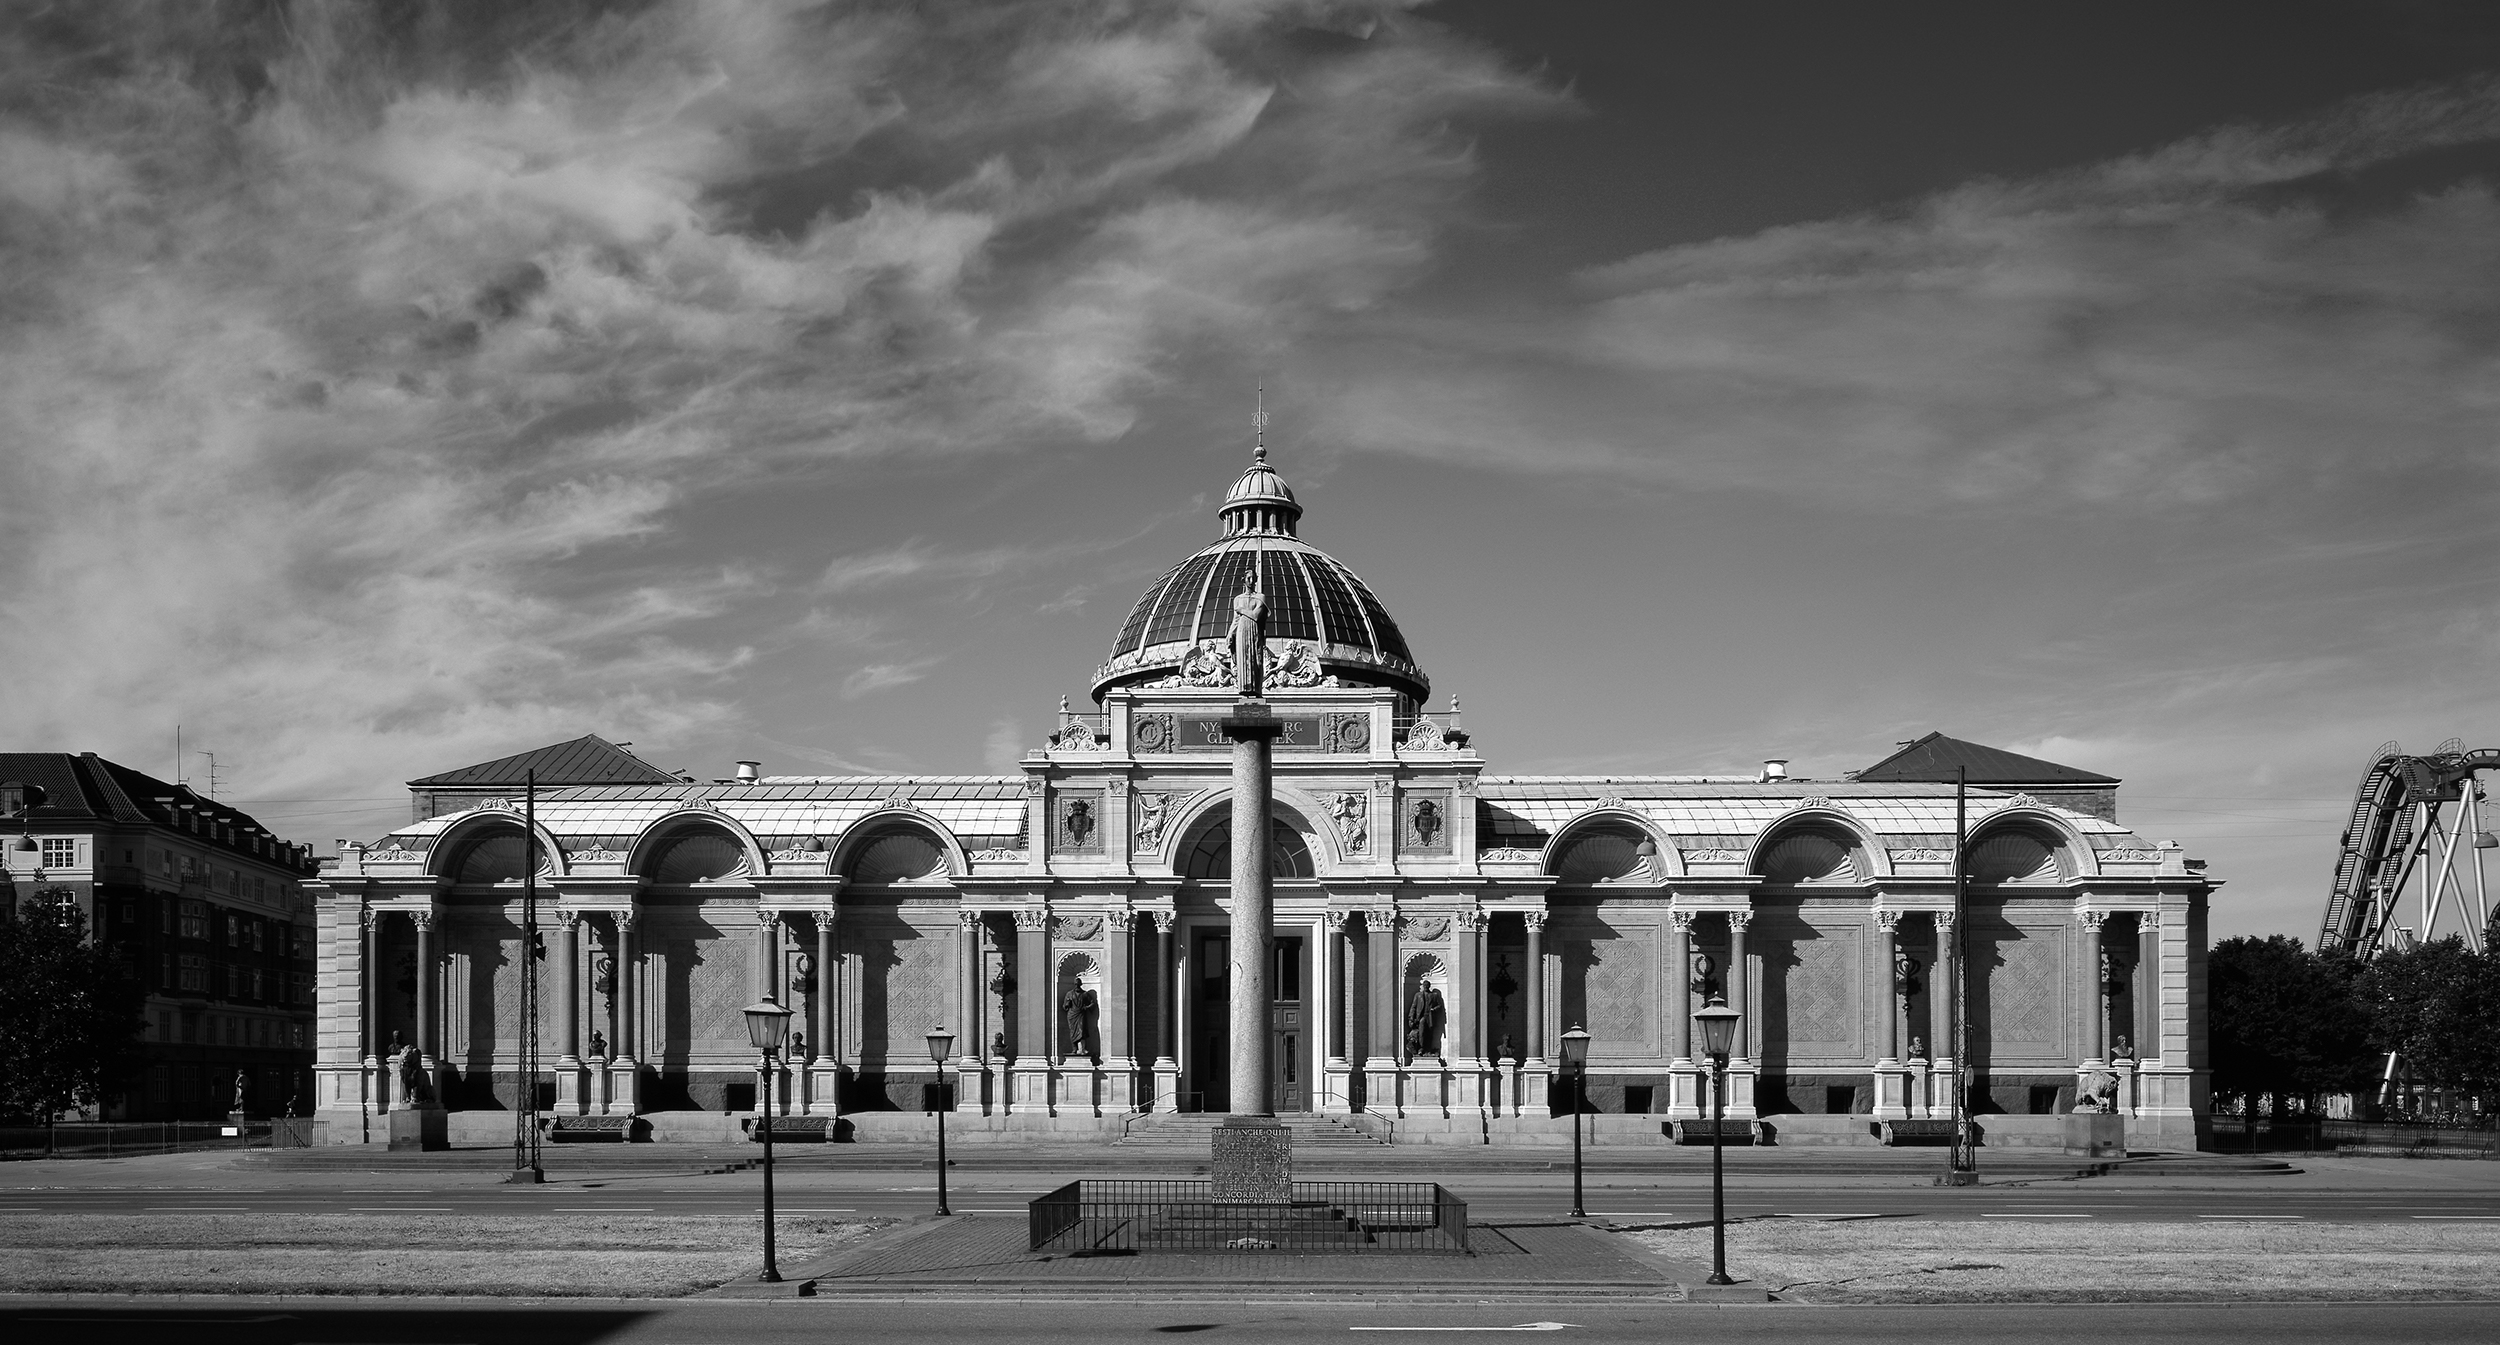 """Selected Constructions, """"Byggeri"""" Journal 2006    Ny Carlsberg Glyptotek  restoration was awarded the prize for Selected Constructions 2006 in the open category by the journal """"Byggeri""""."""